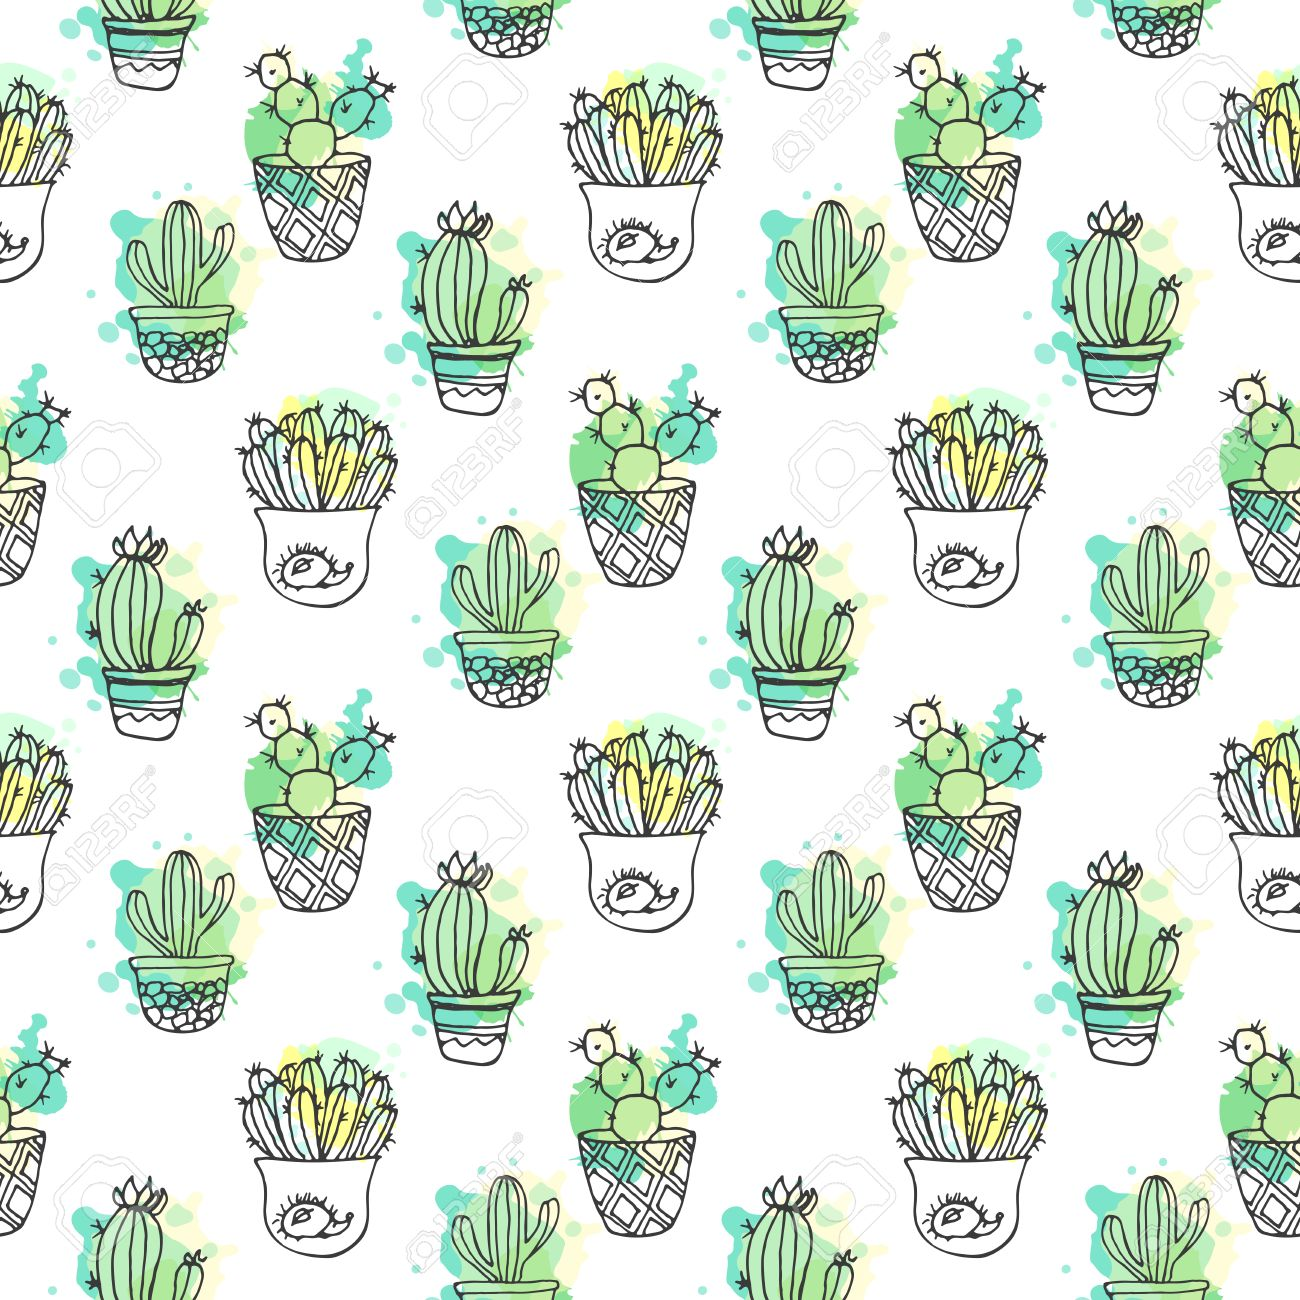 Seamless Vector Pattern With Cactus Colorful Background With Royalty Free Cliparts Vectors And Stock Illustration Image 59831520